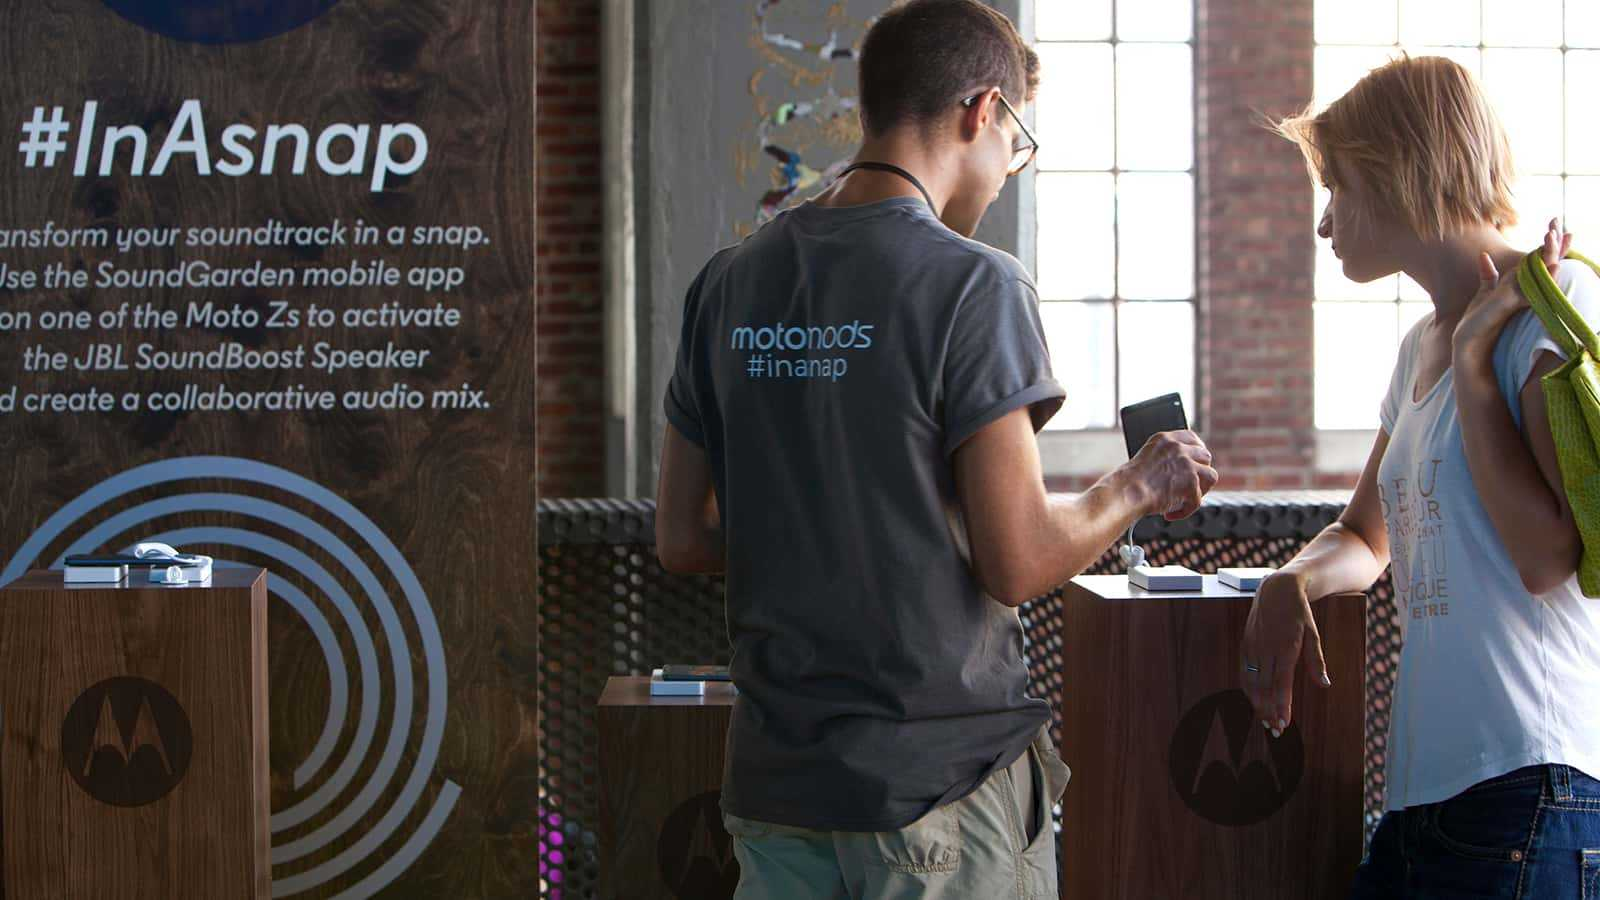 Moto Z Highline 2016 InAsnap Booth